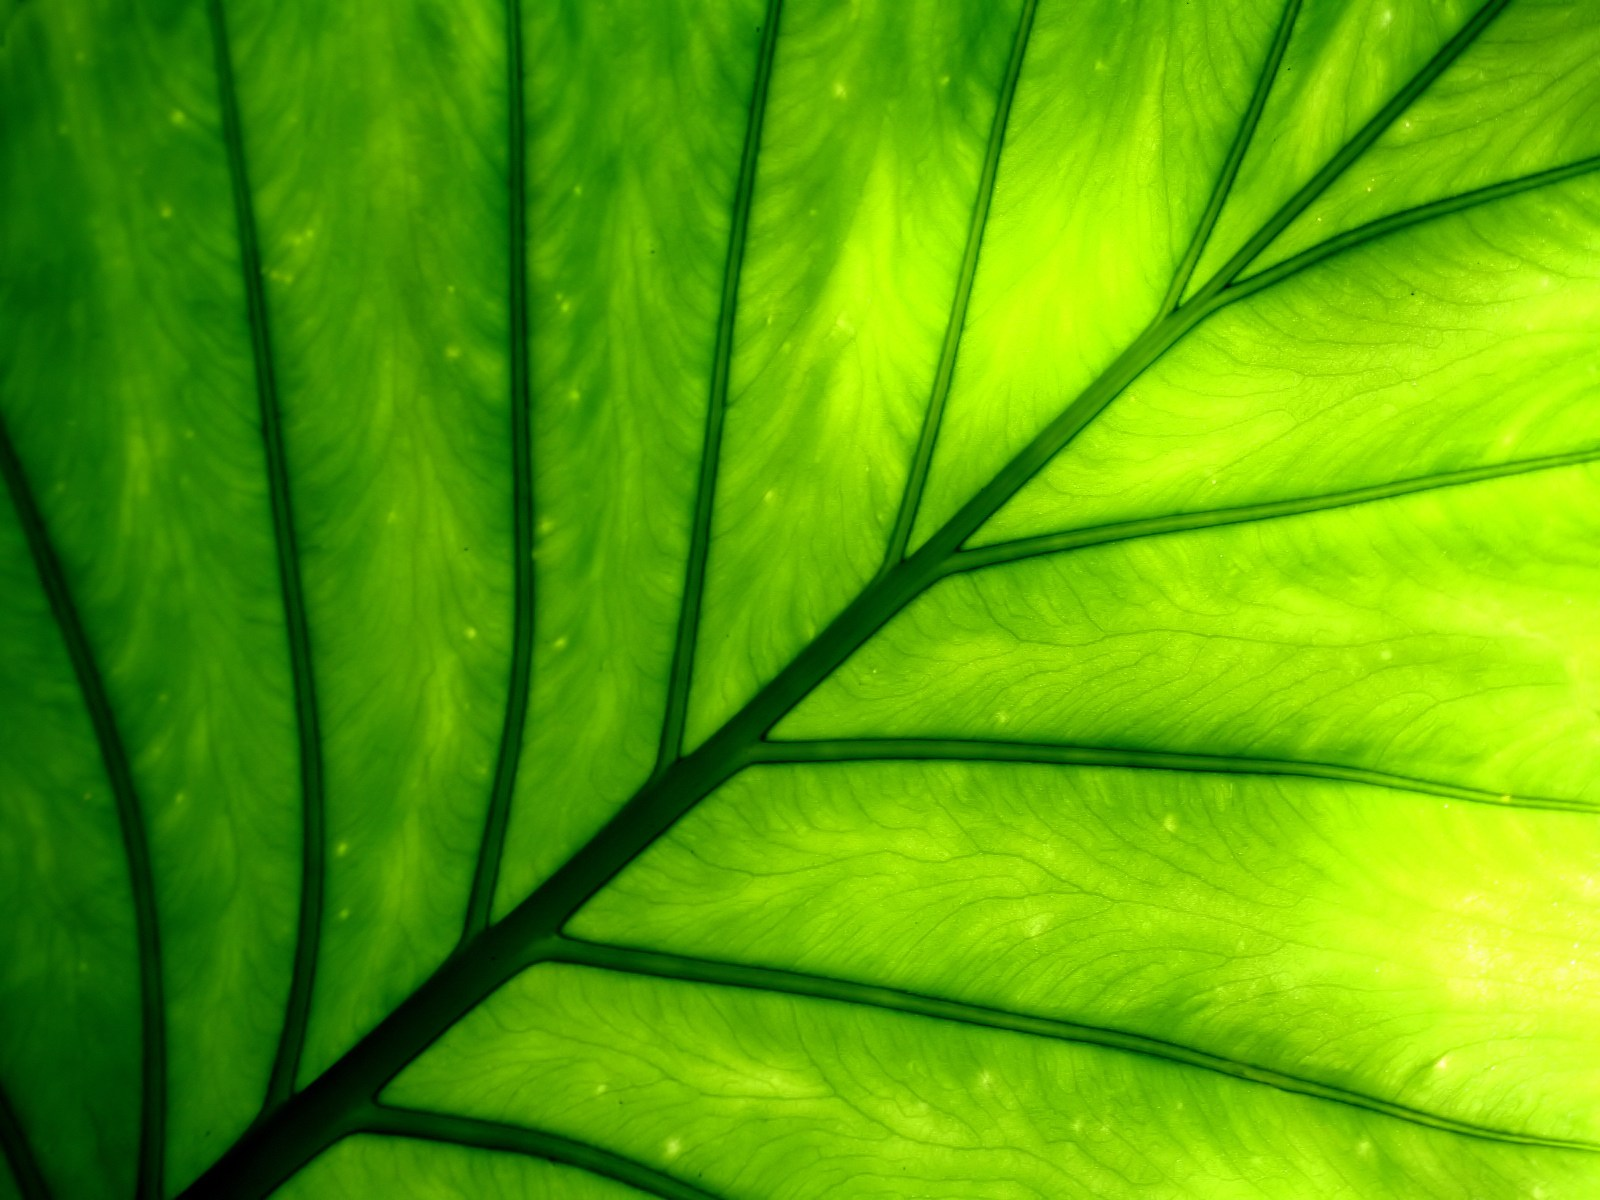 Plant Wallpaper Green Vista